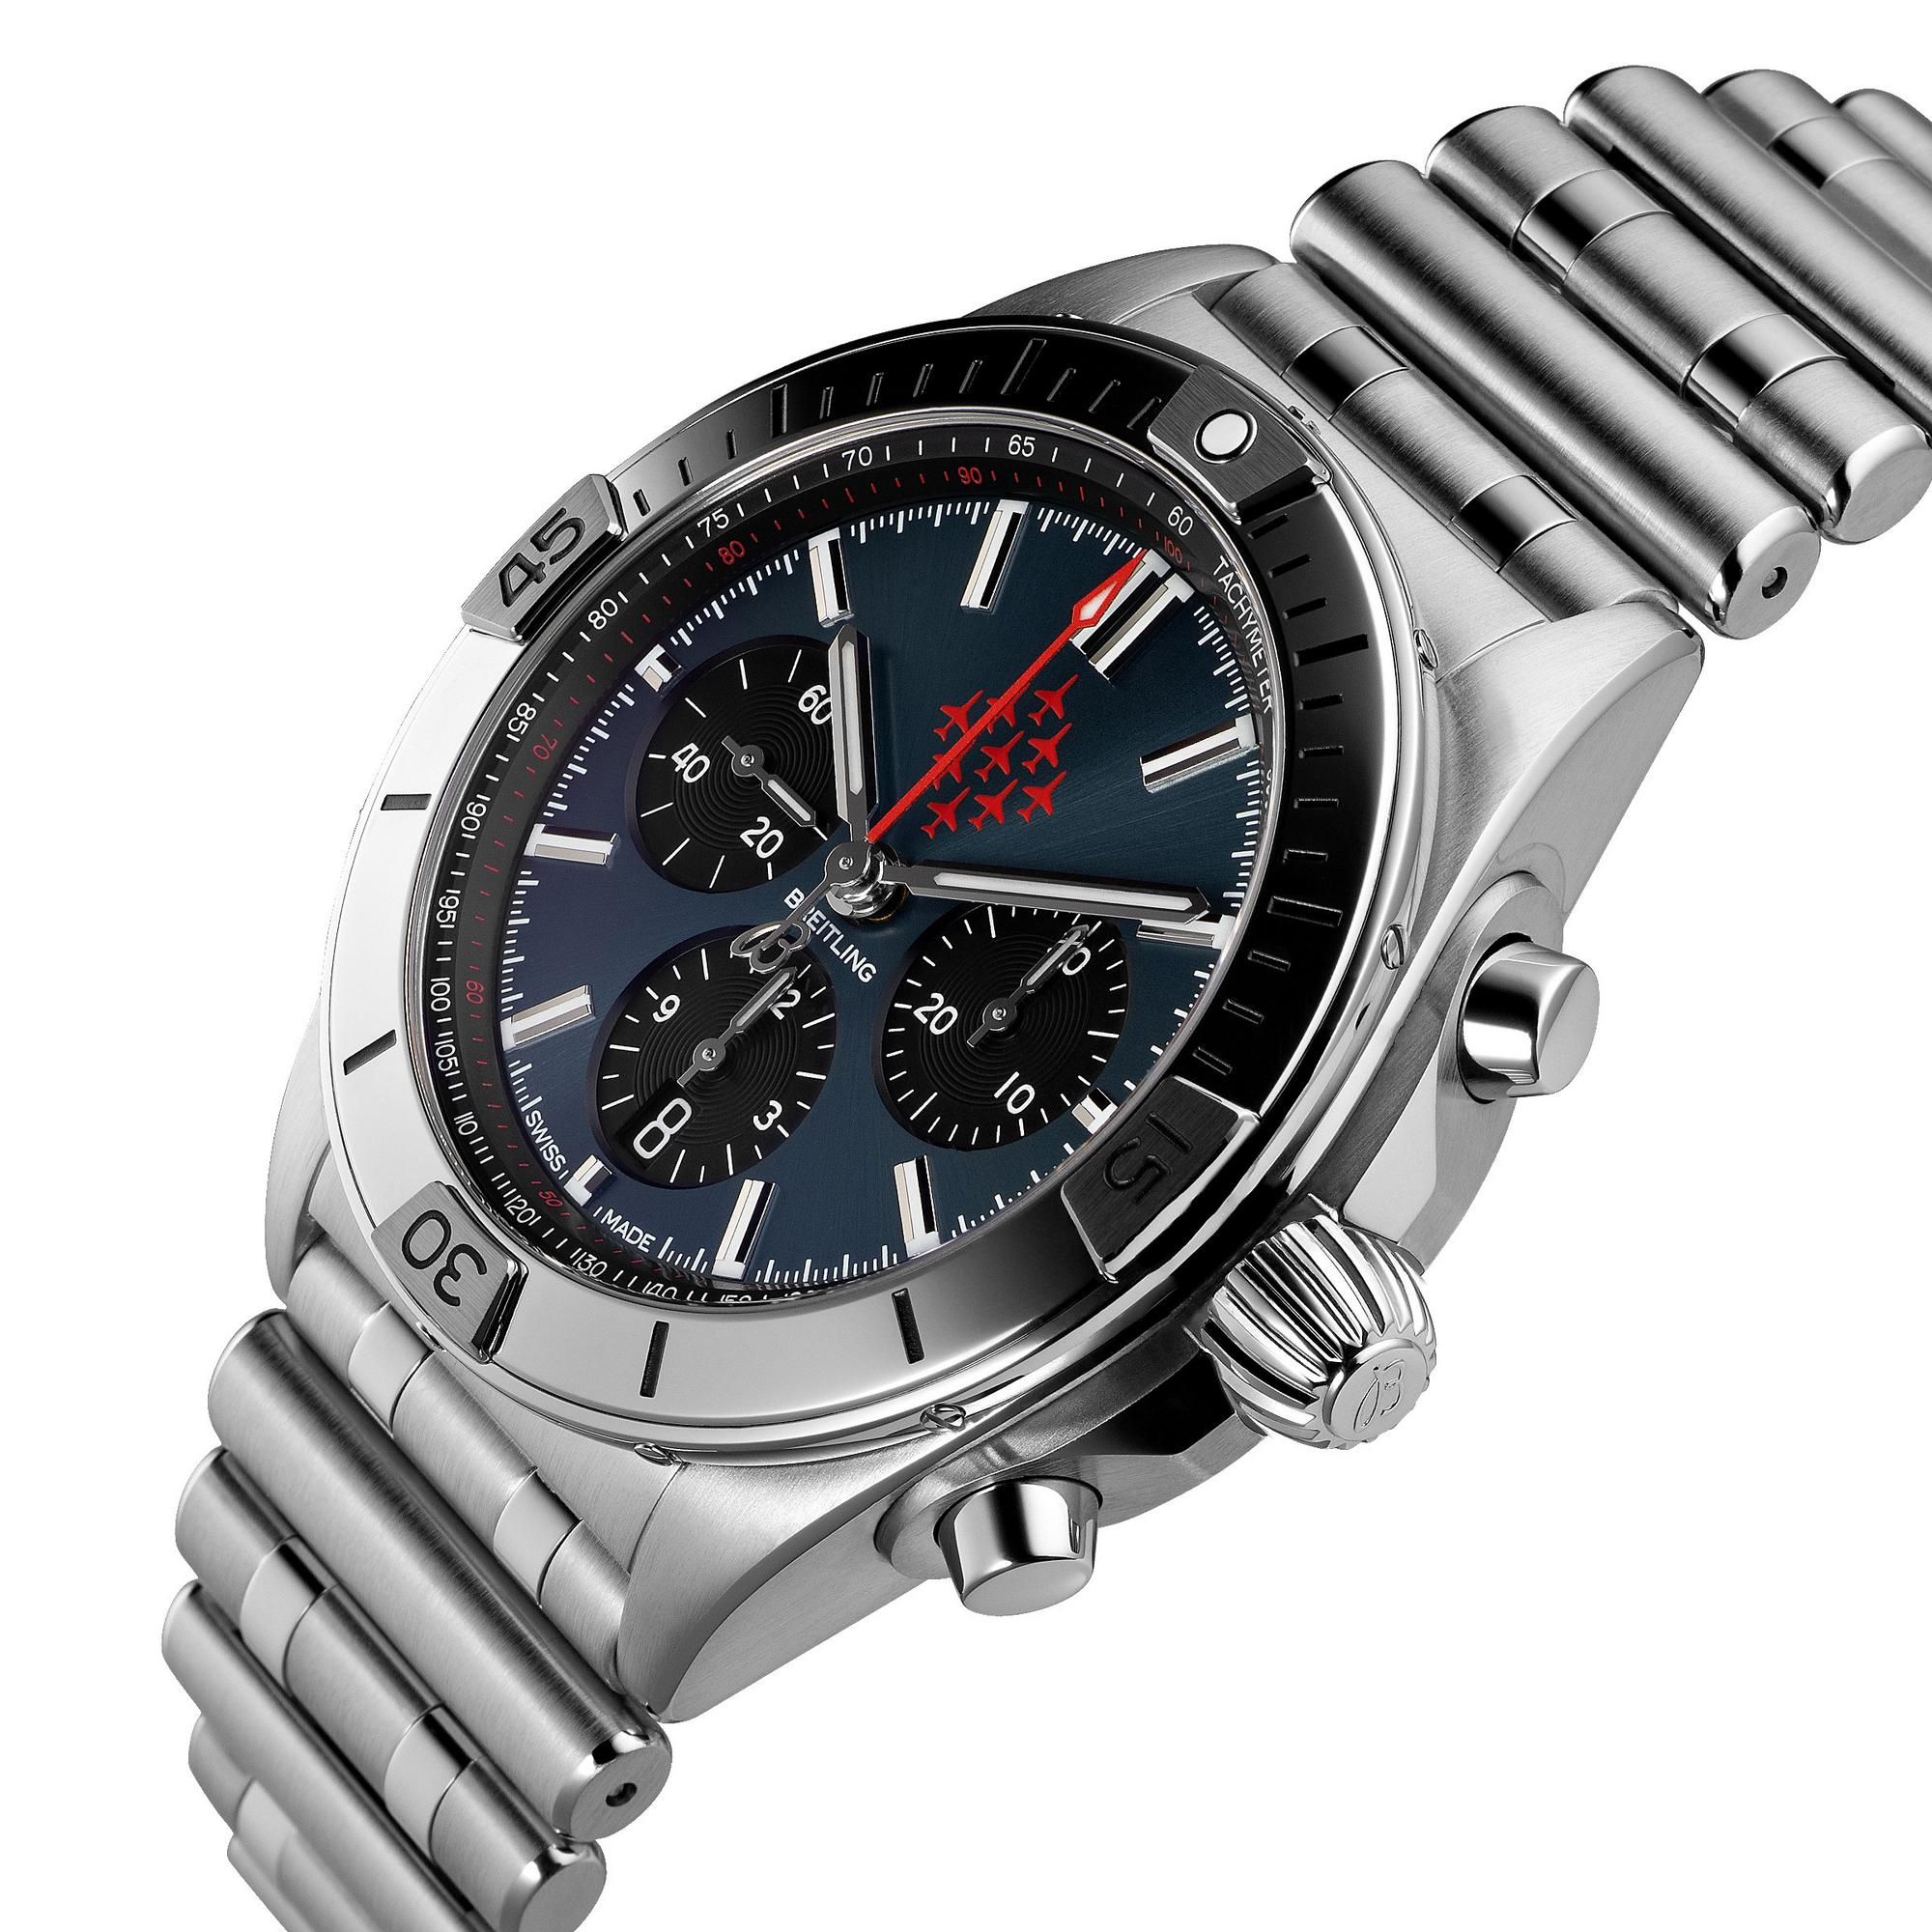 Breitling Chronomat Red Arrows Limited Edition Men's Watch